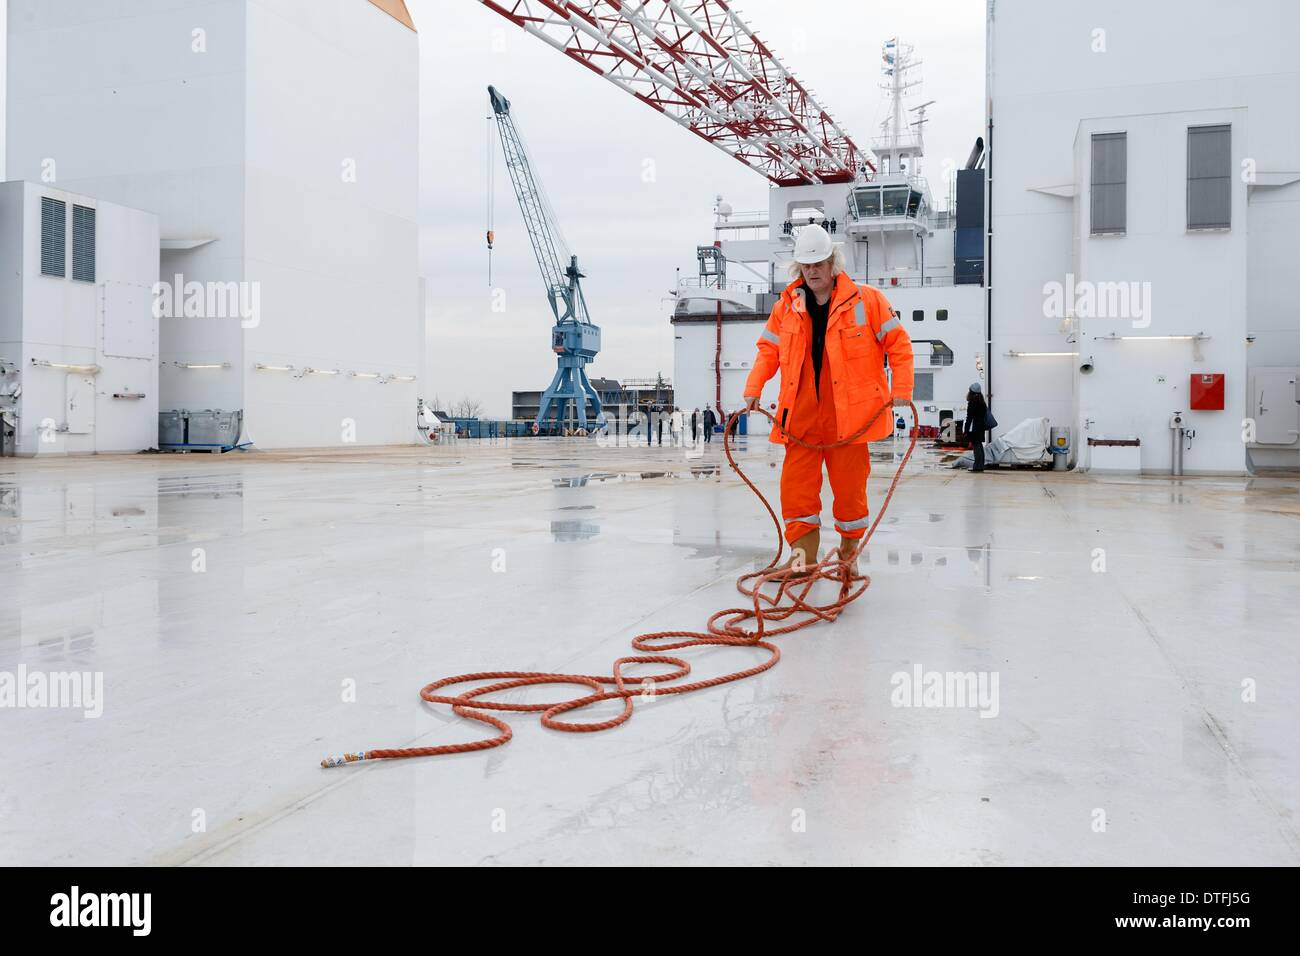 Hamburg, Germany. 17th Feb, 2014. A crew member disentangles a rope on the deck of wind turbine installation vessel Aeolus at the Sietas shipyard in Hamburg, Germany, 17 February 2014. Aeolus is the first wind turbine installation vessel to be designed and built in Germany and will be used by Van Oord for the construction of wind turbines at the Eneco Luchterduinen wind park from July 2014. Photo: MARKUS SCHOLZ/DPA/Alamy Live News - Stock Image